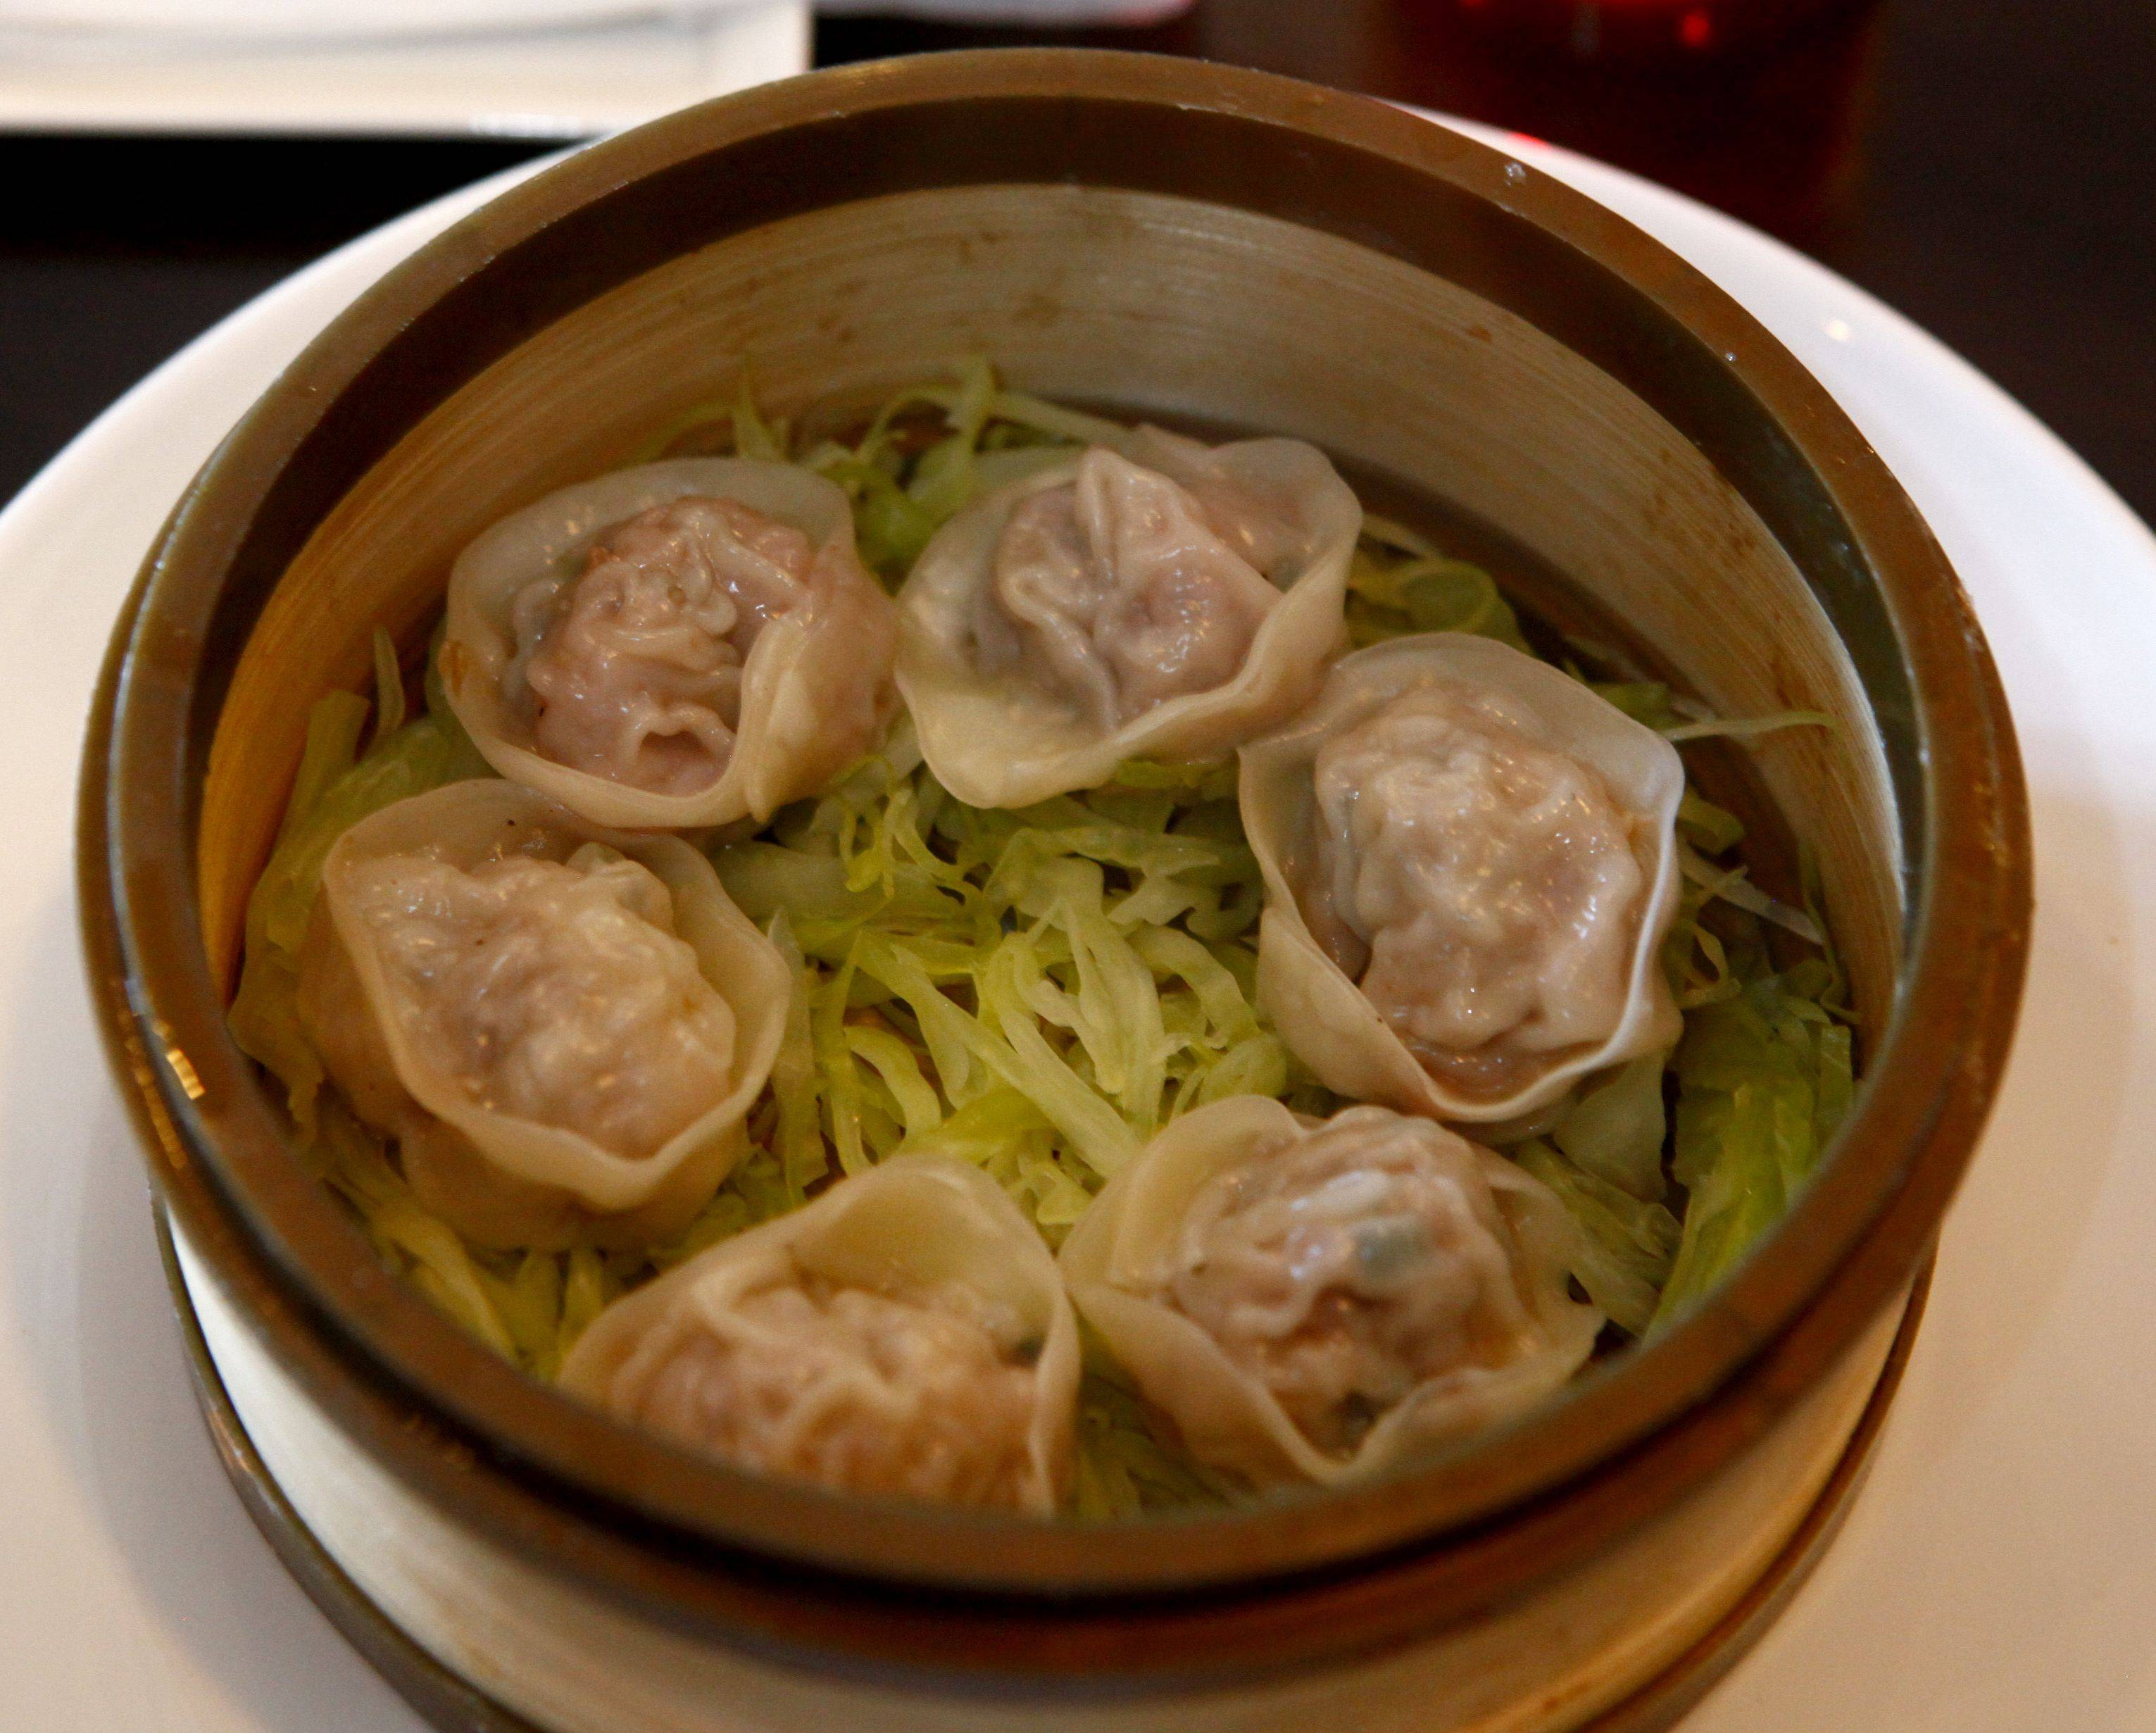 Don't miss Ttowa's dumplings, a specialty served either steamed or fried and made with a choice of fillings.